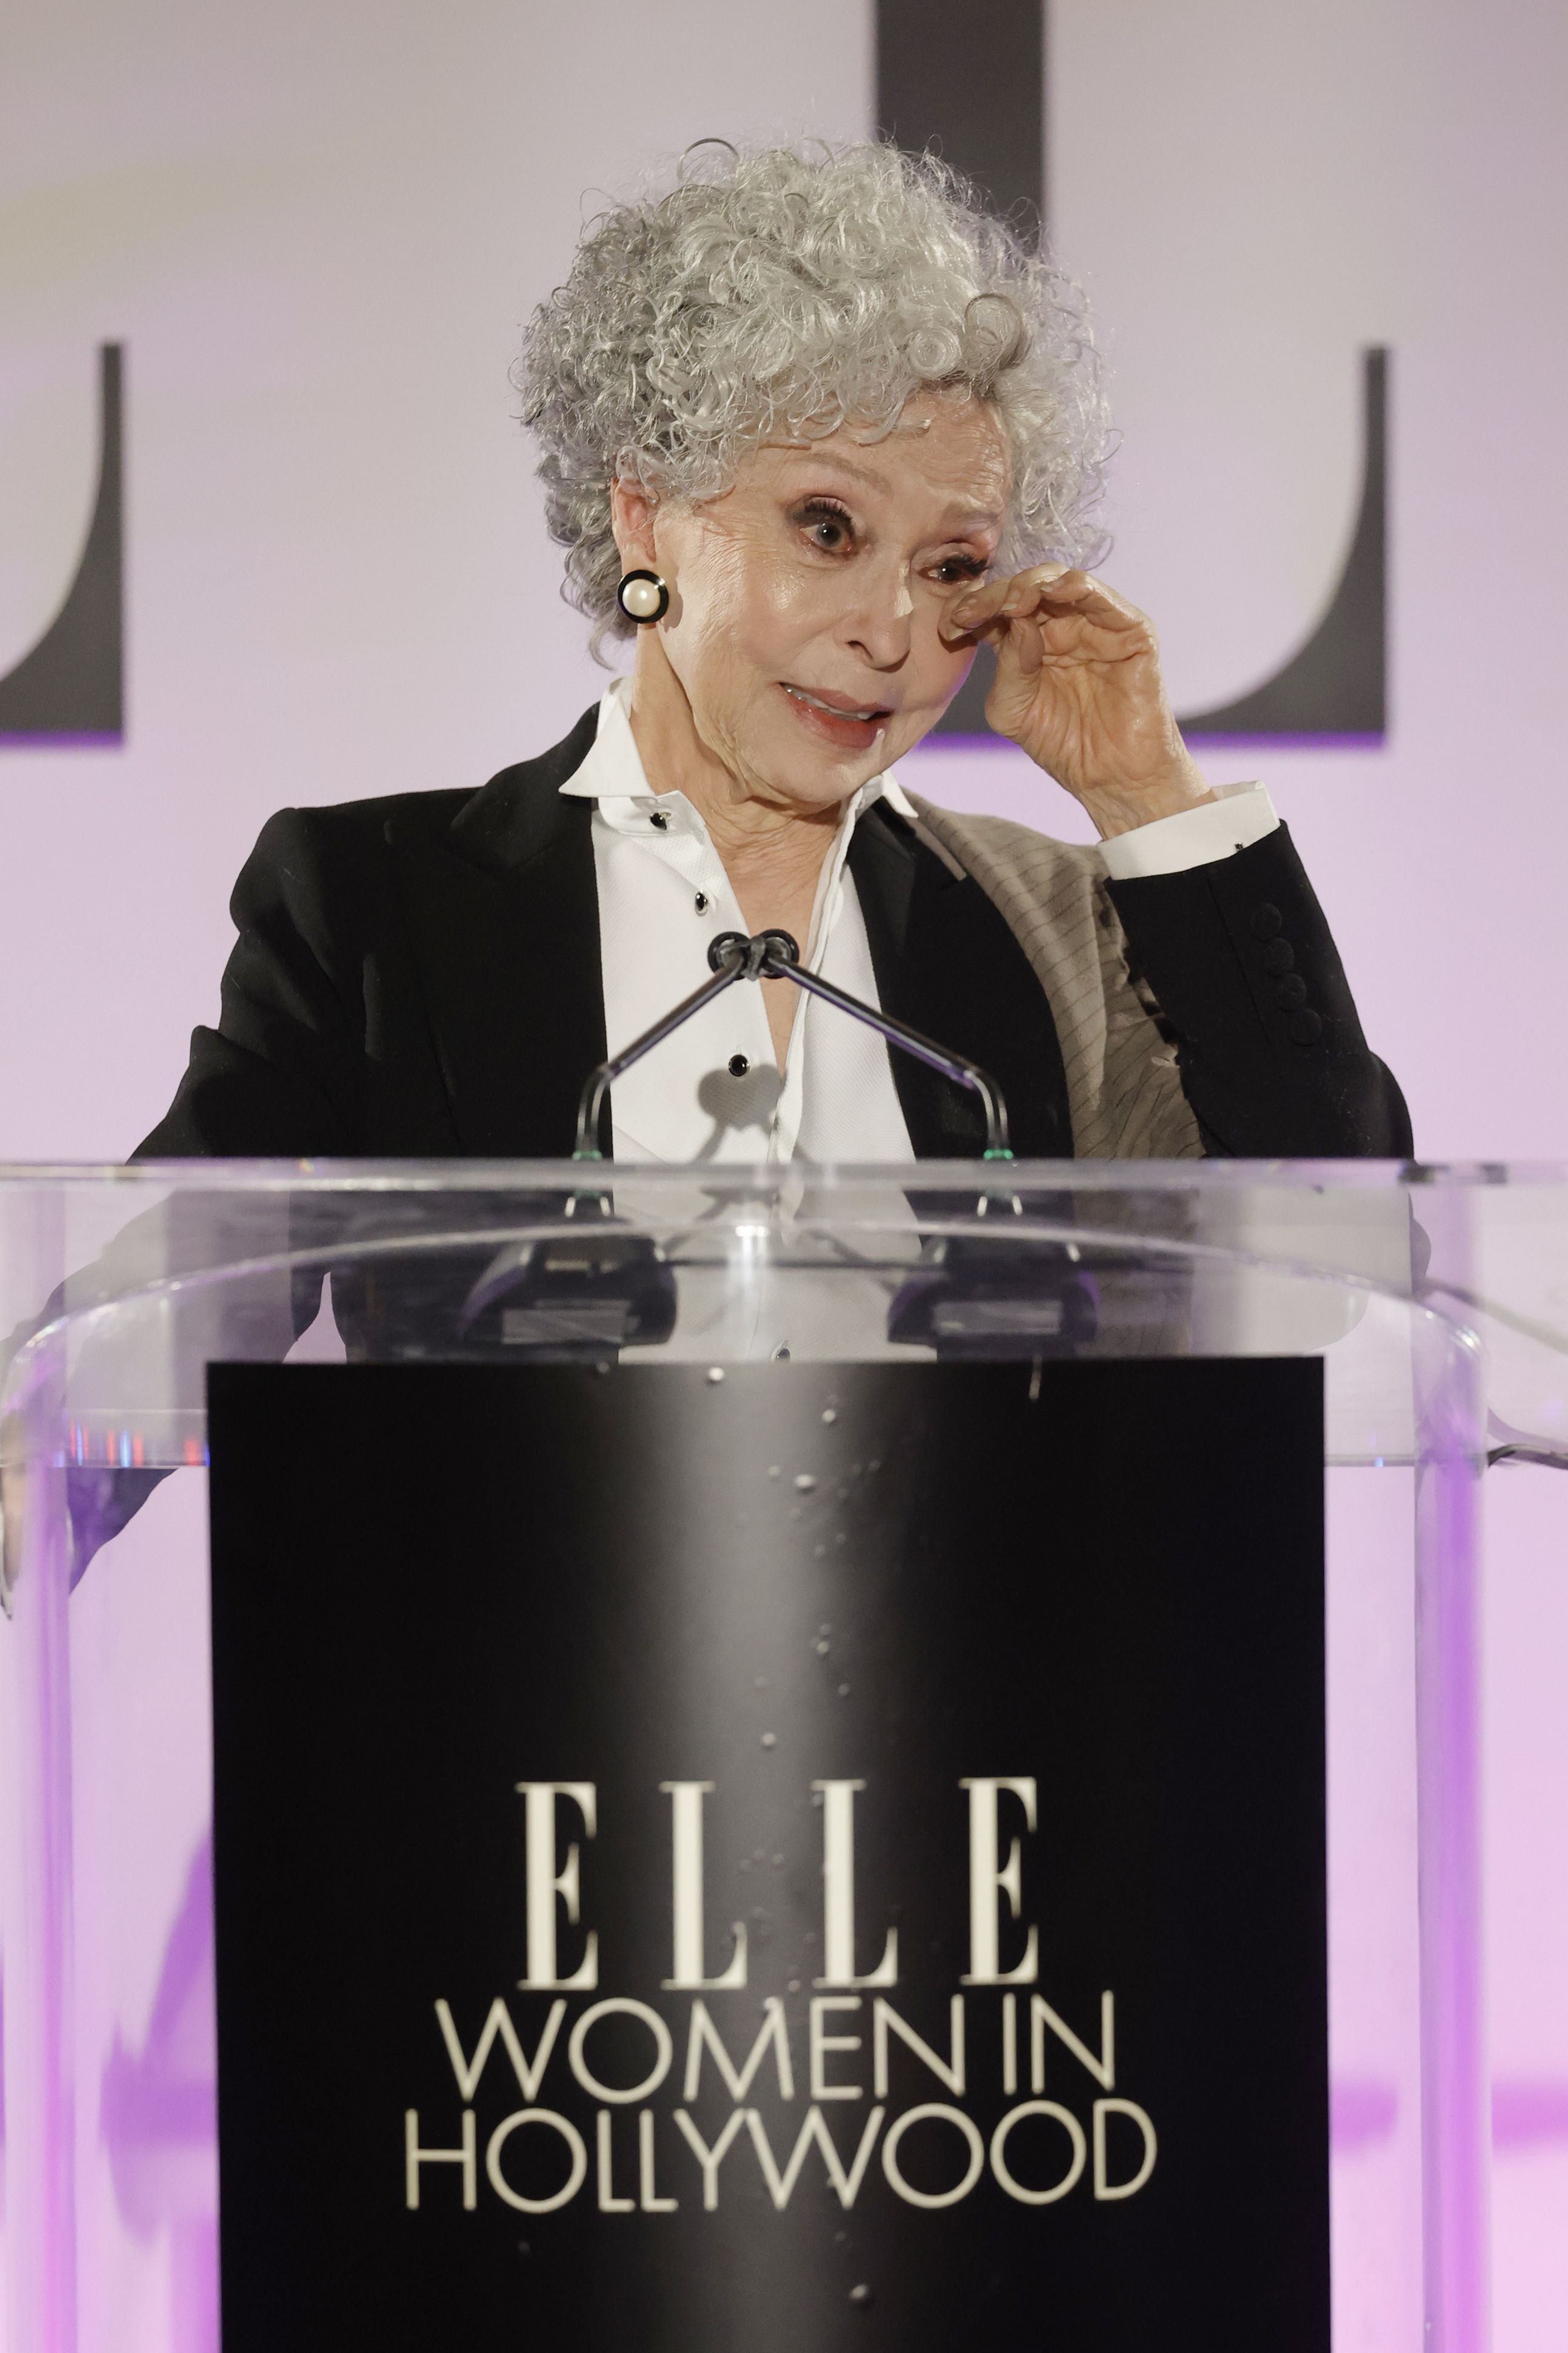 Rita Moreno Had The Perfect Comedic Response To Her Tribute At ELLE's Women in Hollywood Event